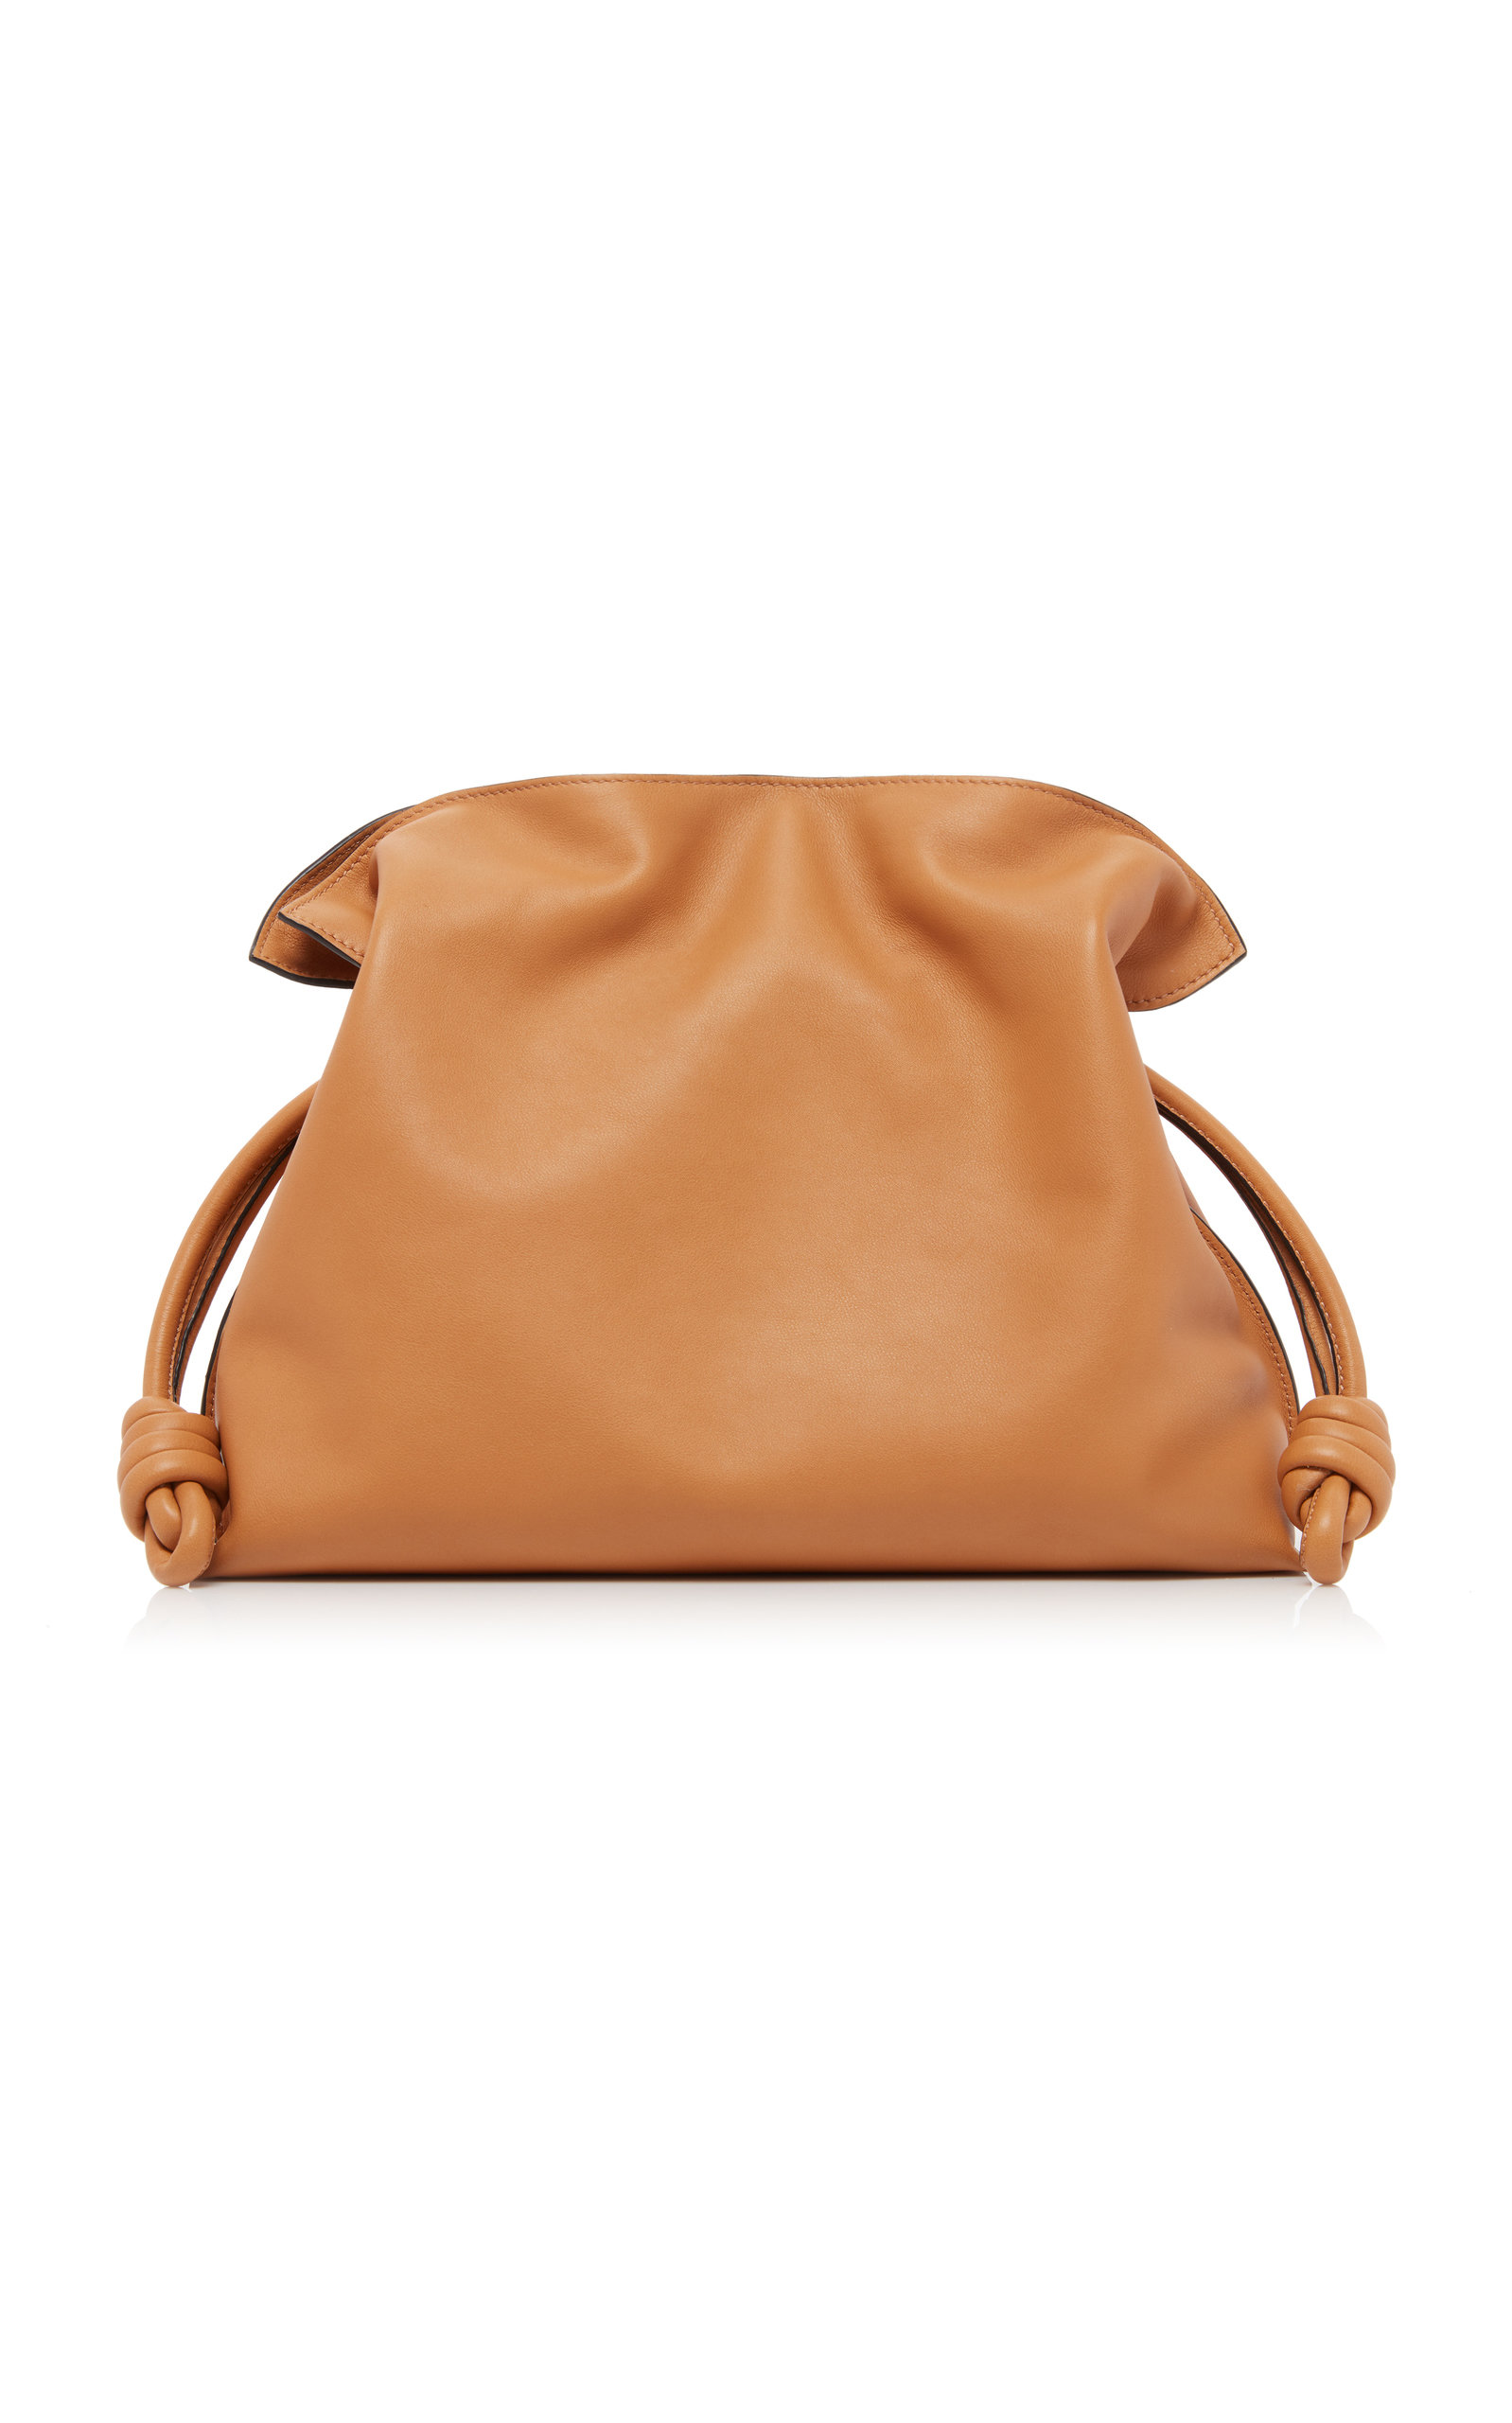 Loewe's impeccable craftsmanship is what makes its handbags among the most coveted. This 'Flamenco Knot' clutch has been made in the label's Spanish atelier from soft, supple Nappa leather to give it a slouchy silhouette that's perfect for holding daily essentials. Add the shoulder strap and adjust to the right length when you feel like carrying a crossbody.